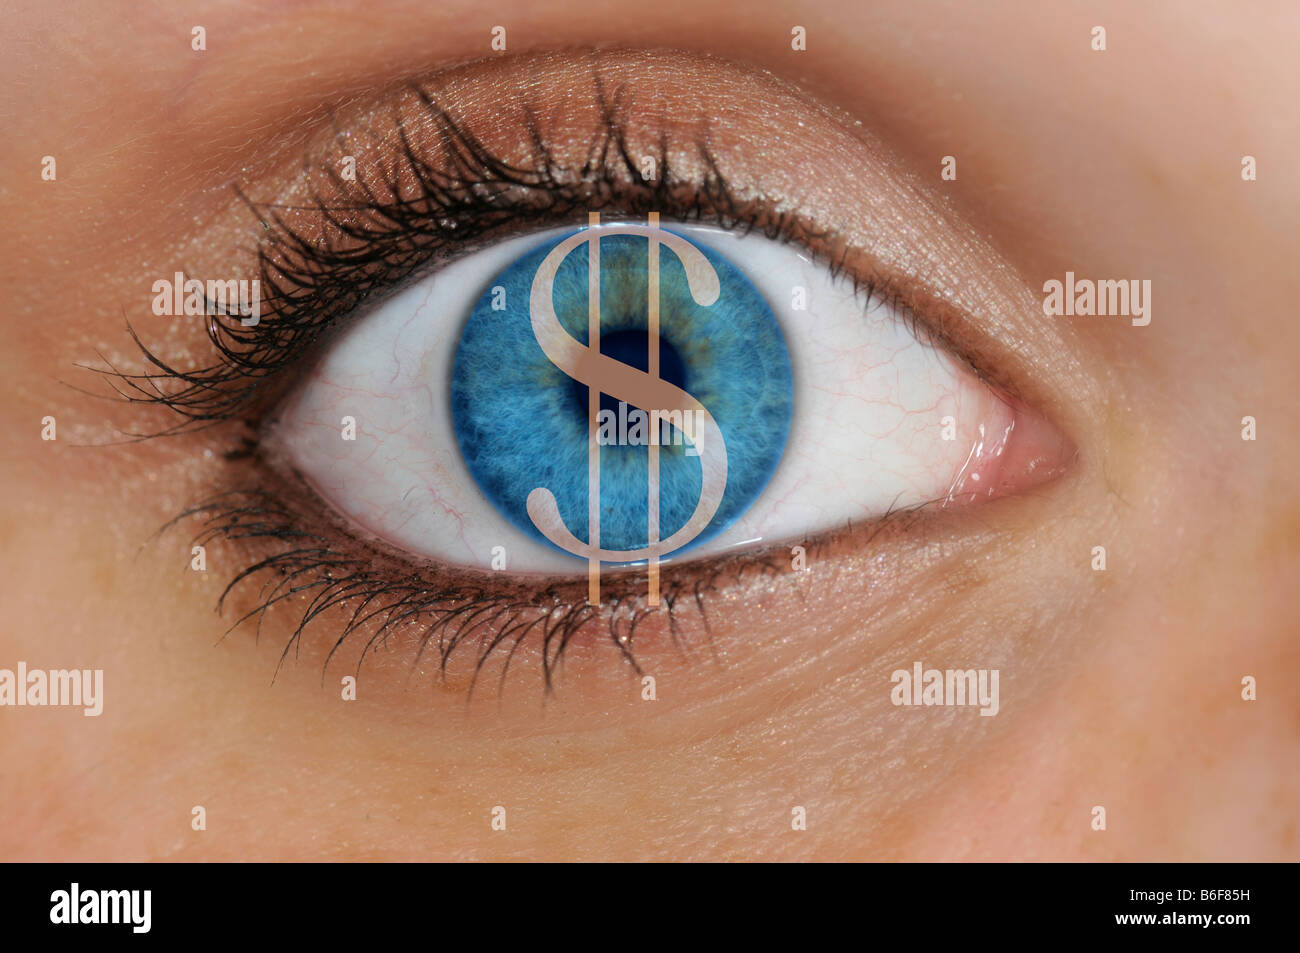 Close-up of a dollar sign over an eye with a light blue iris, symbolizing greed Stock Photo